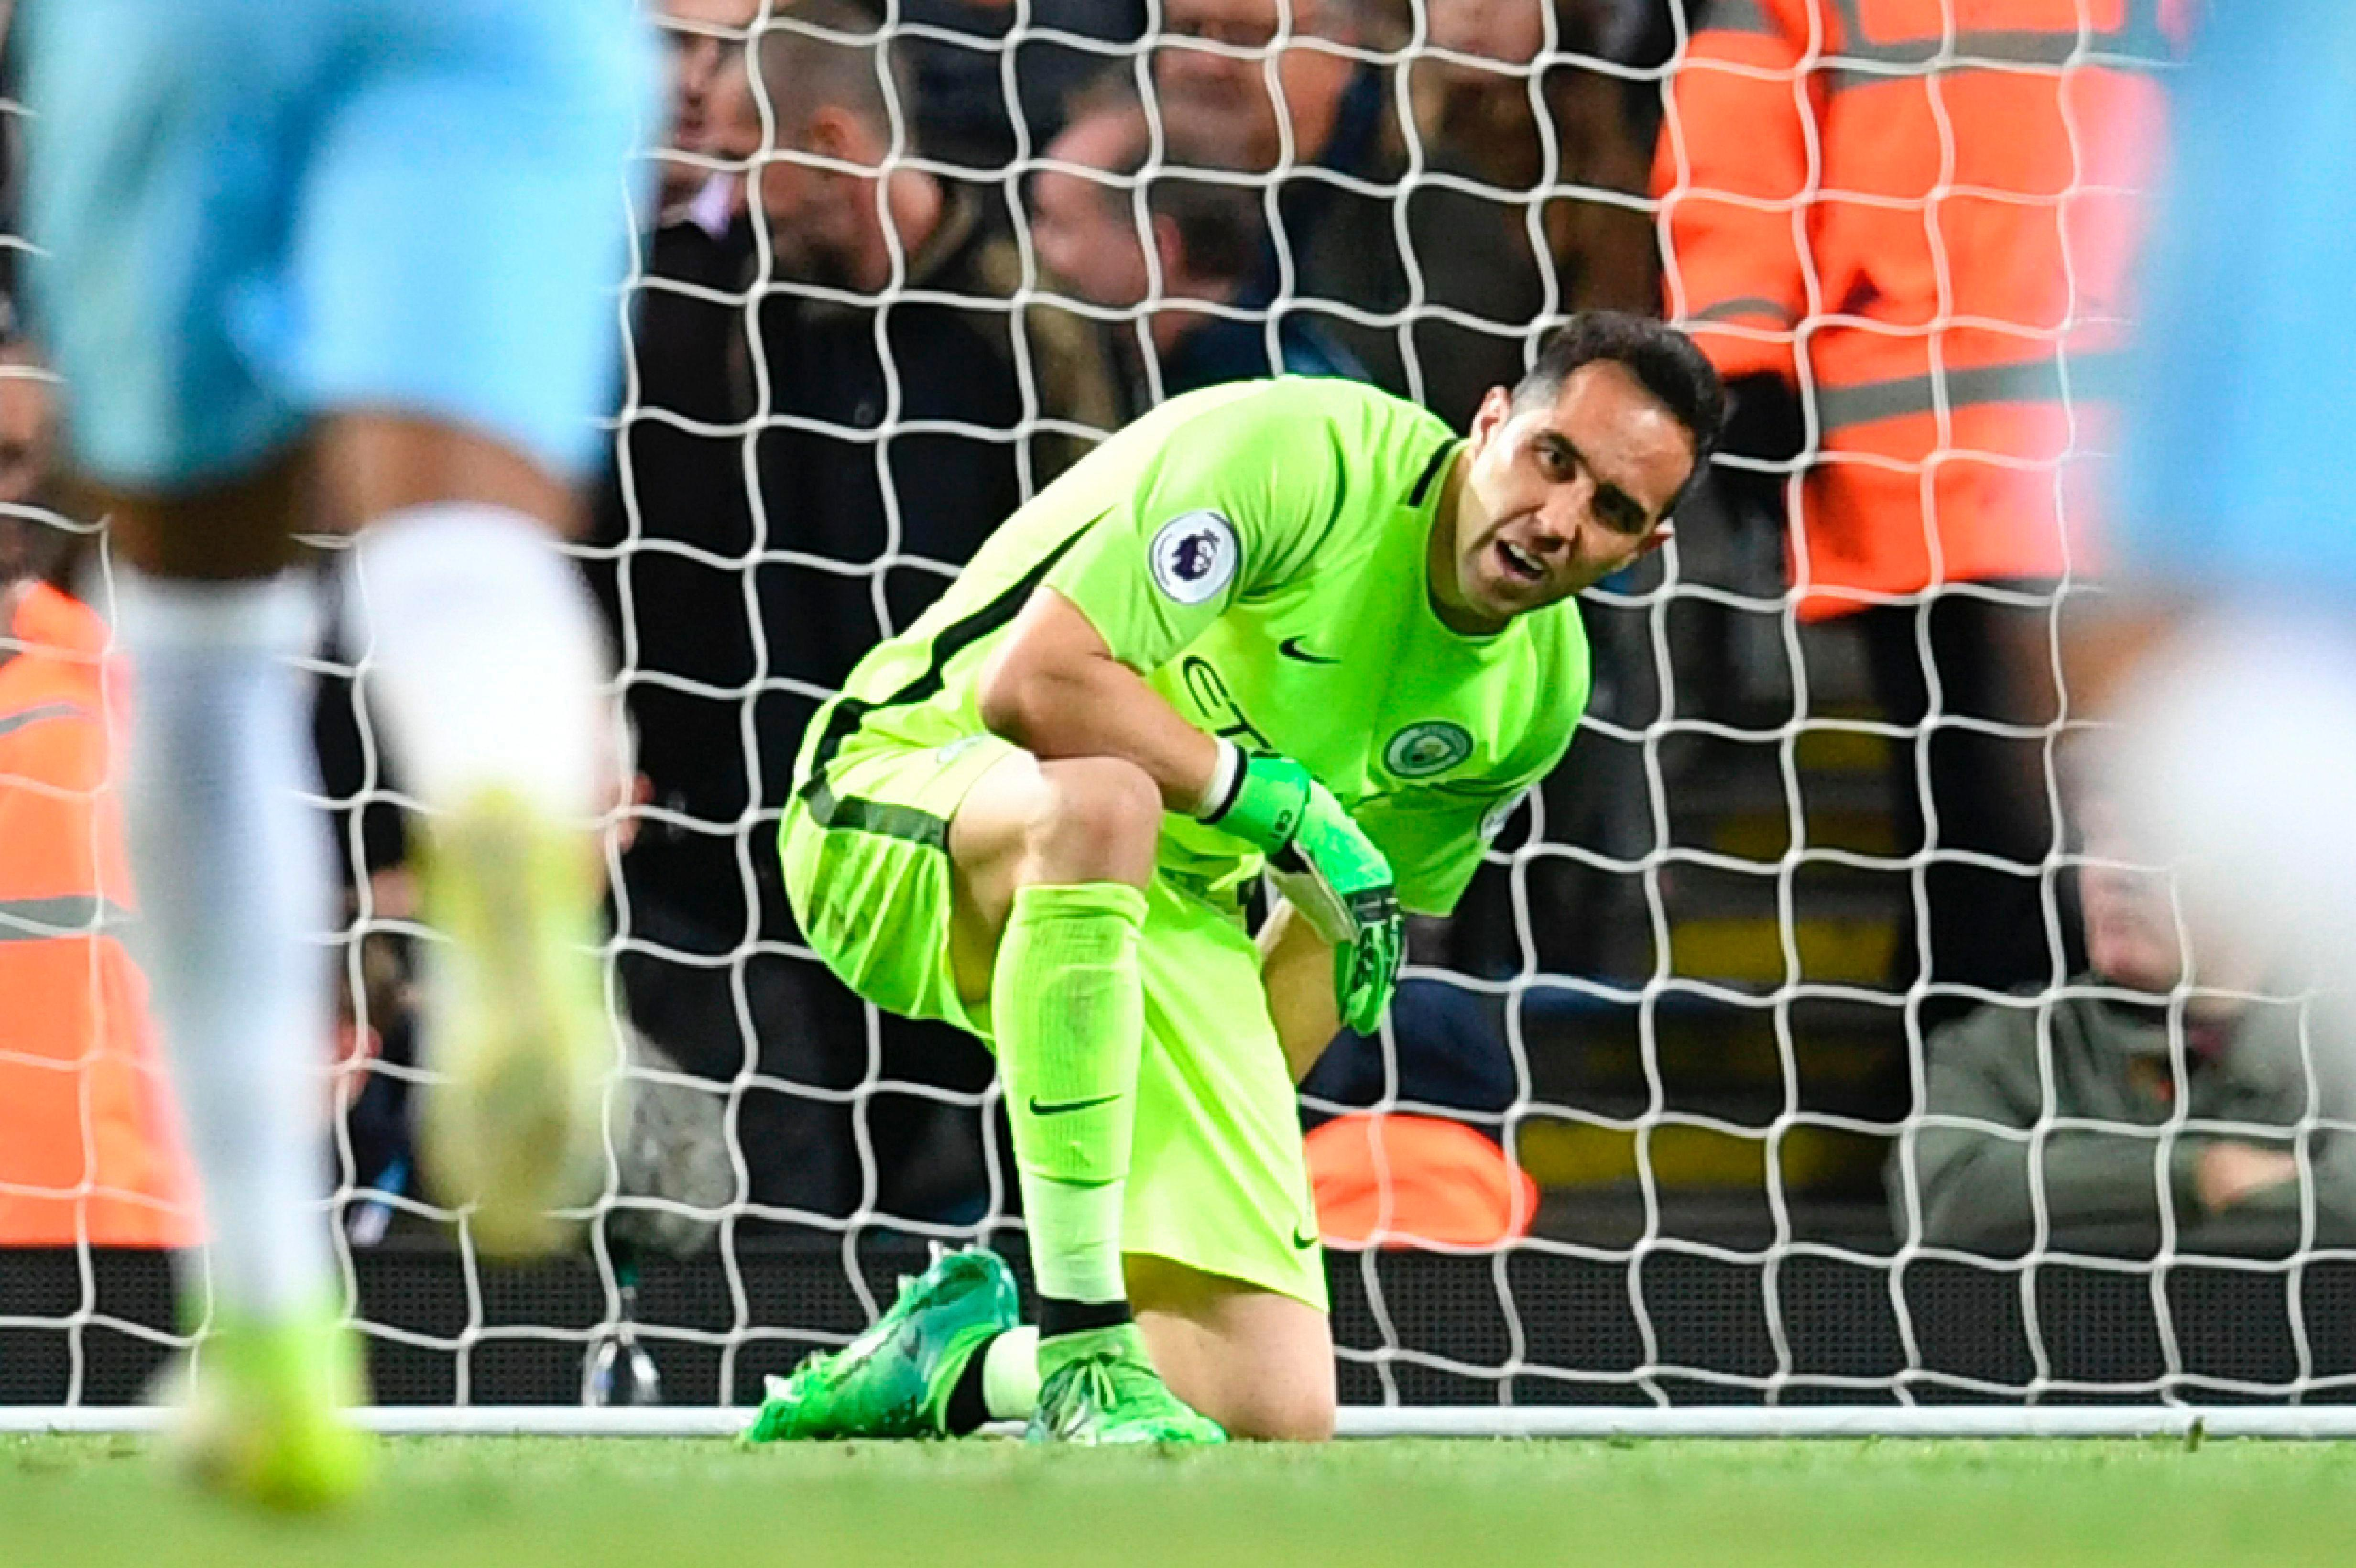 Claudio Bravo came to collect a corner but hurt himself while landing